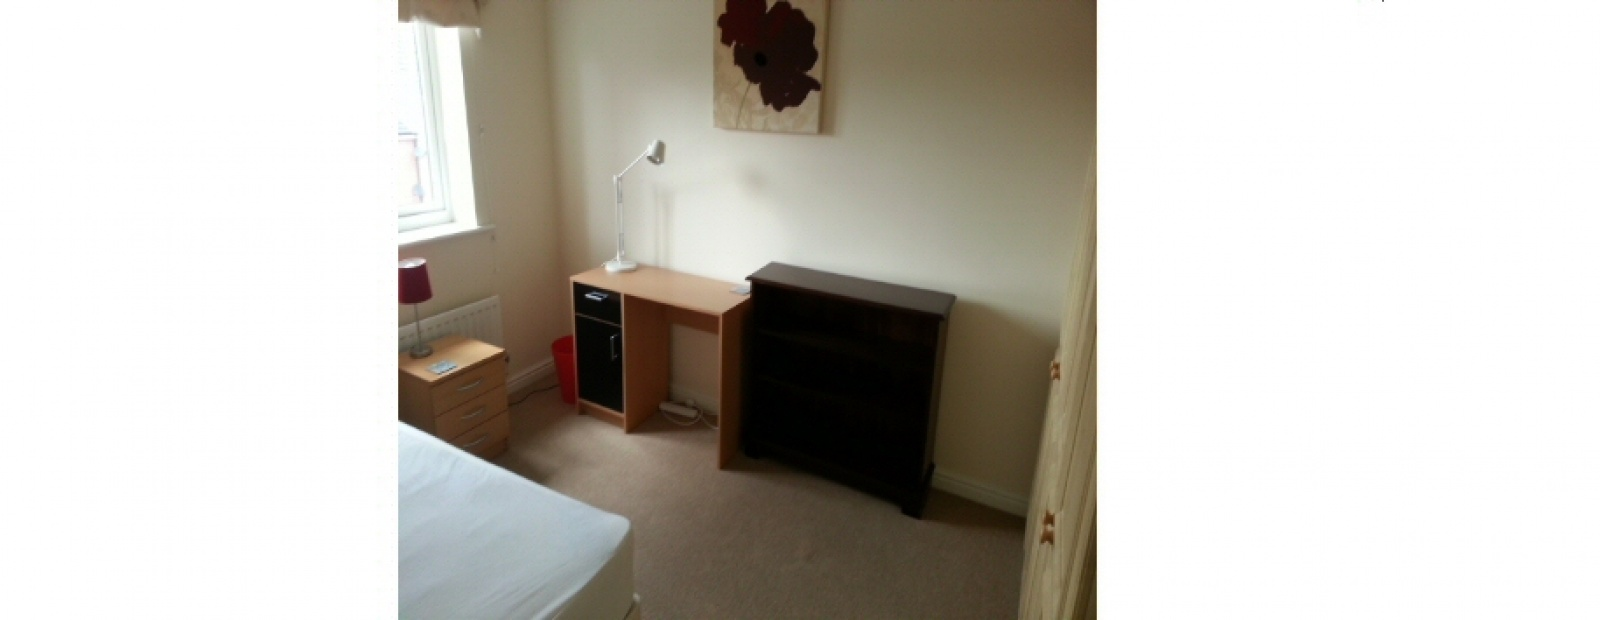 84 Godwin Way, Stoke-on-Trent, Staffordshire, United Kingdom ST4 6JS, 3 Rooms Rooms,House,For Rent,Godwin Way,1008